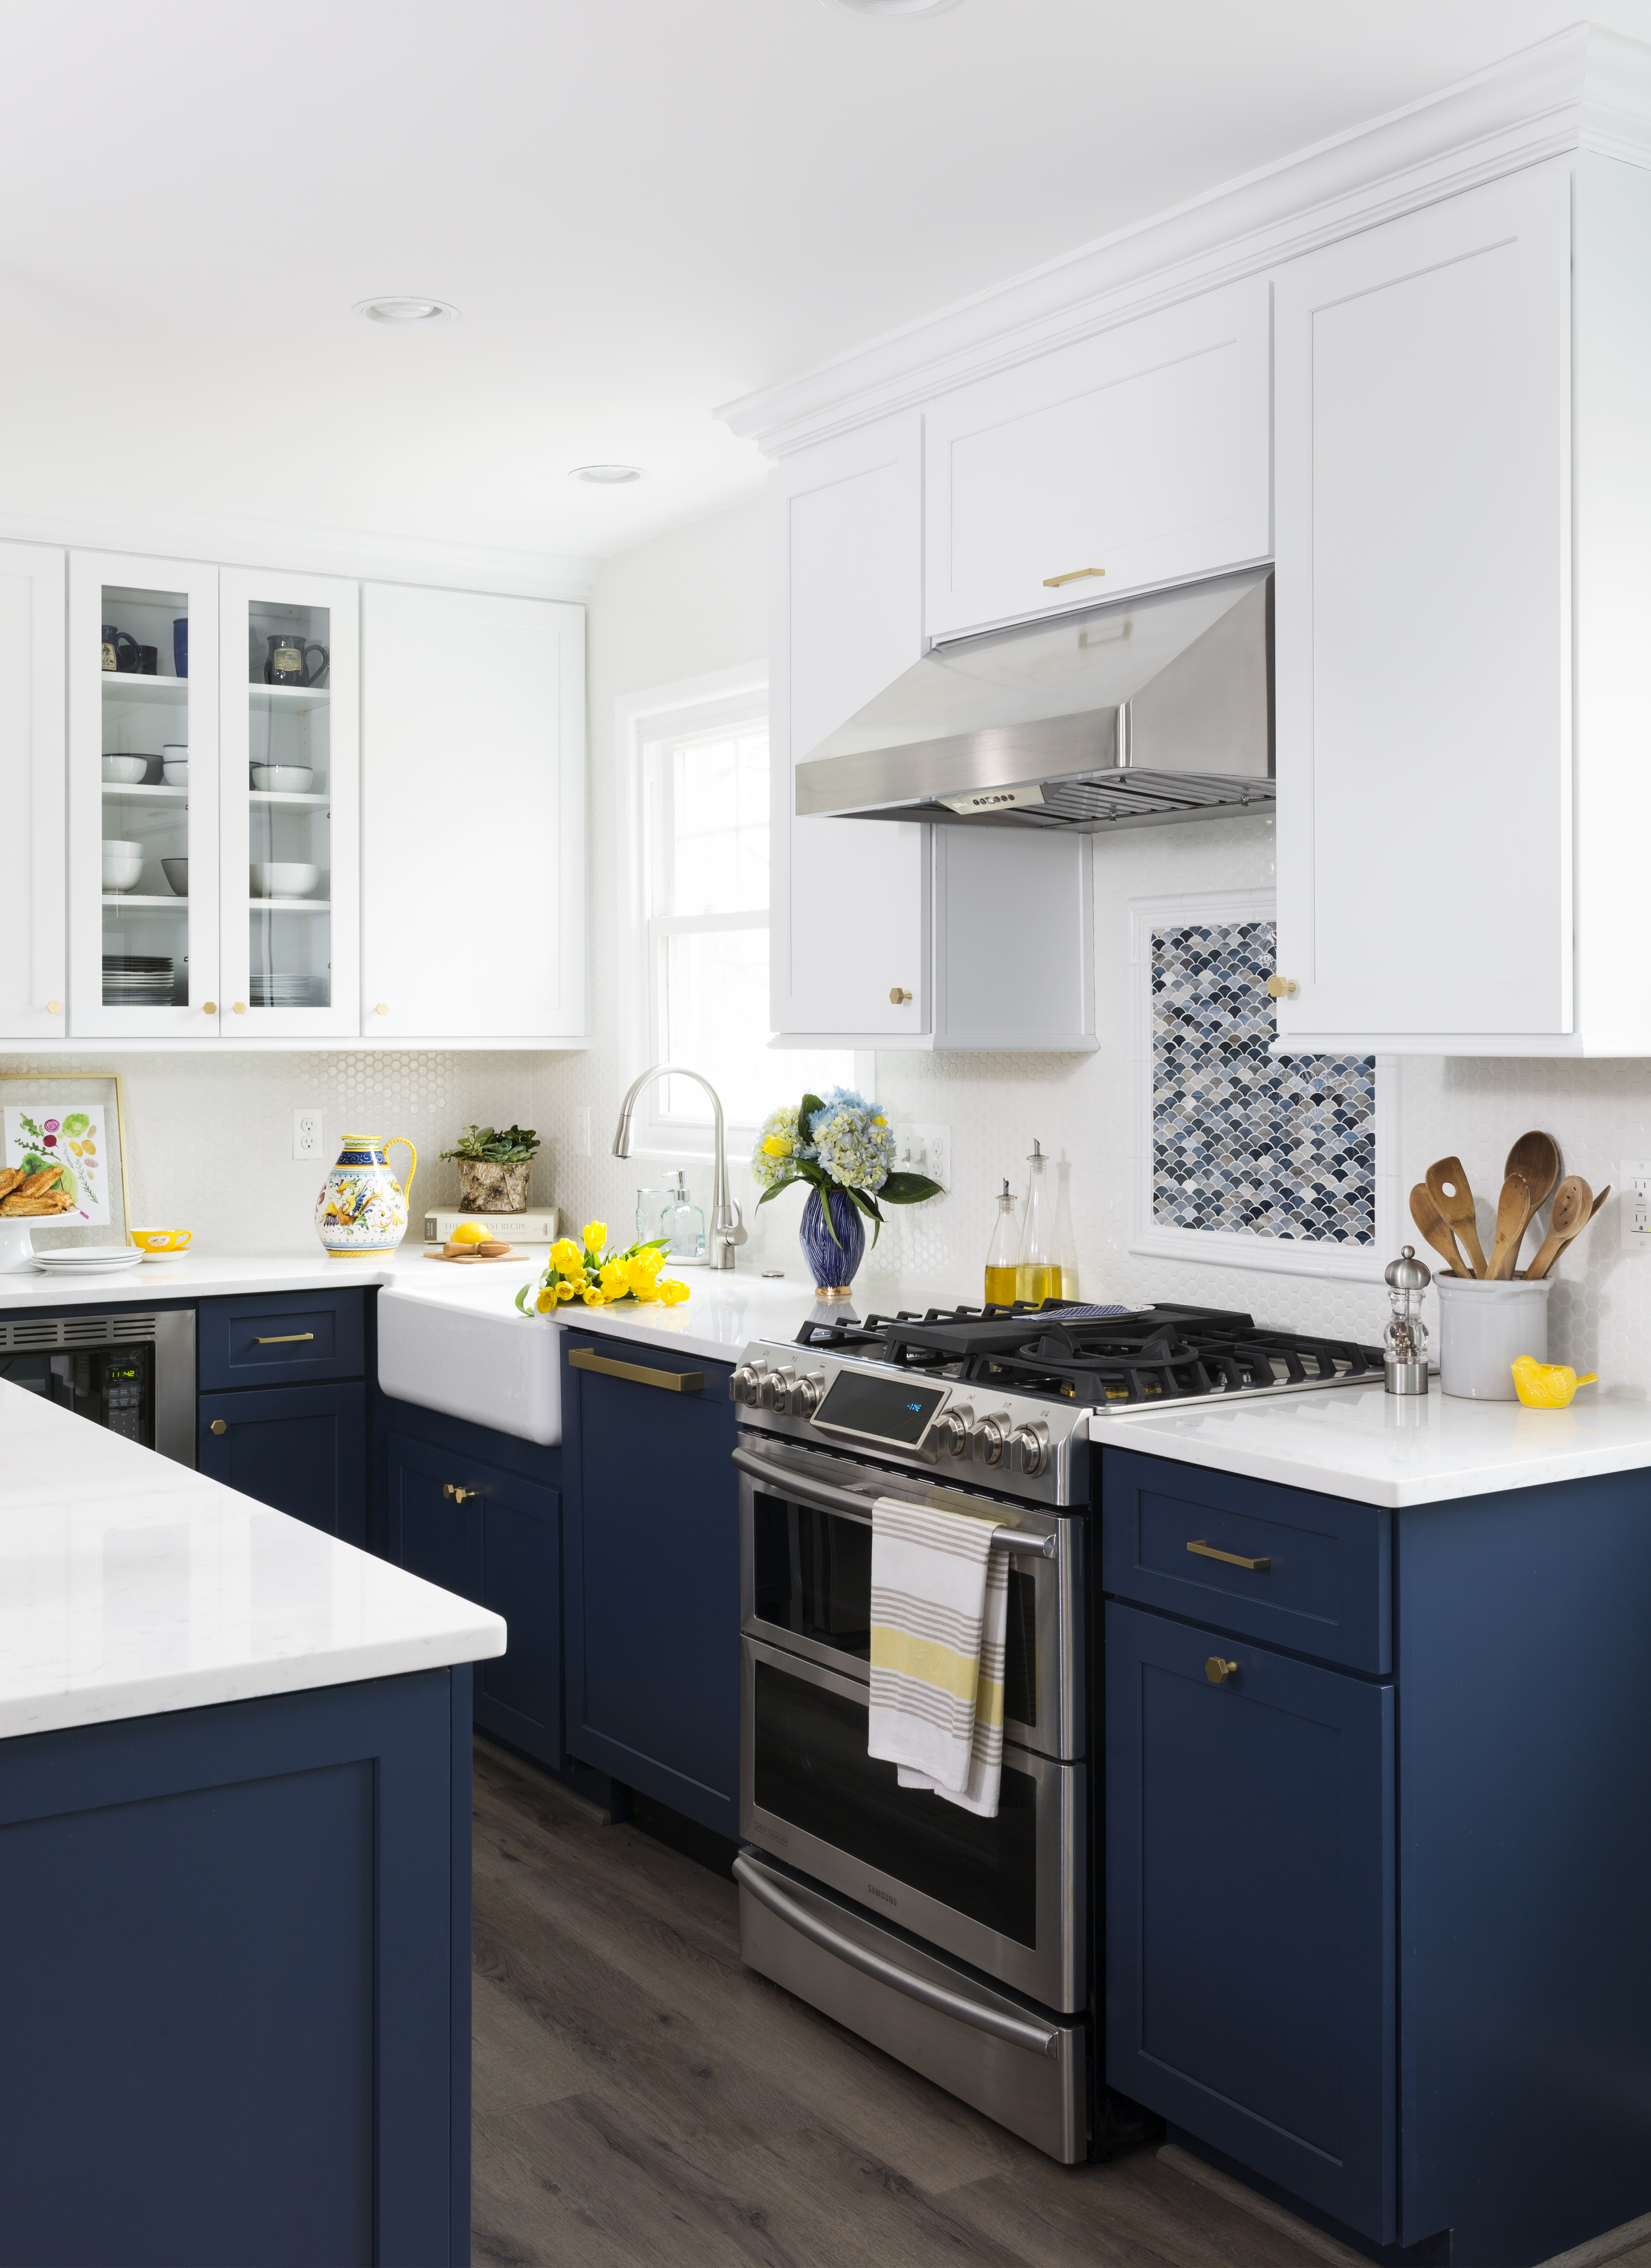 10 Kitchen Trends For 2019 Put Away The Clutter Pull Out The Color The Washington Post